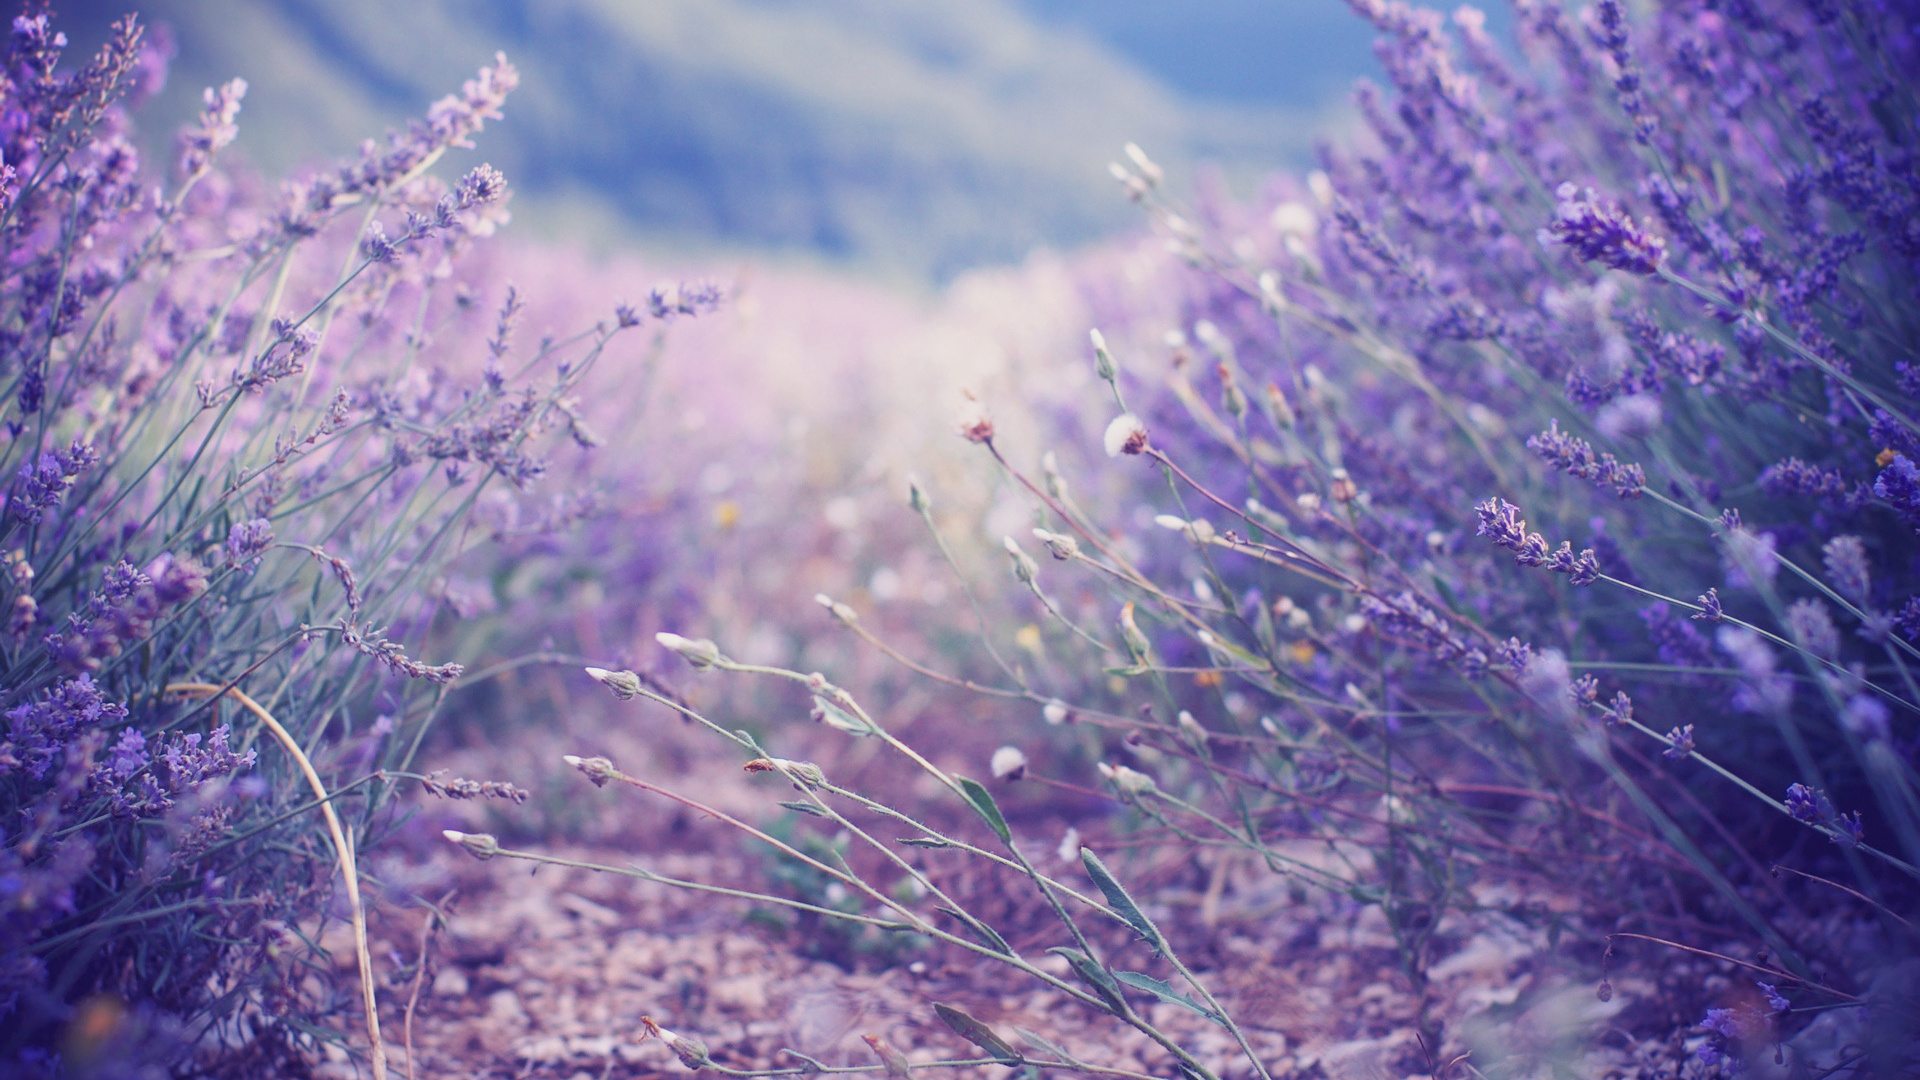 Lavender Flowers Wallpapers   Wallpaper High Definition High Quality 1920x1080